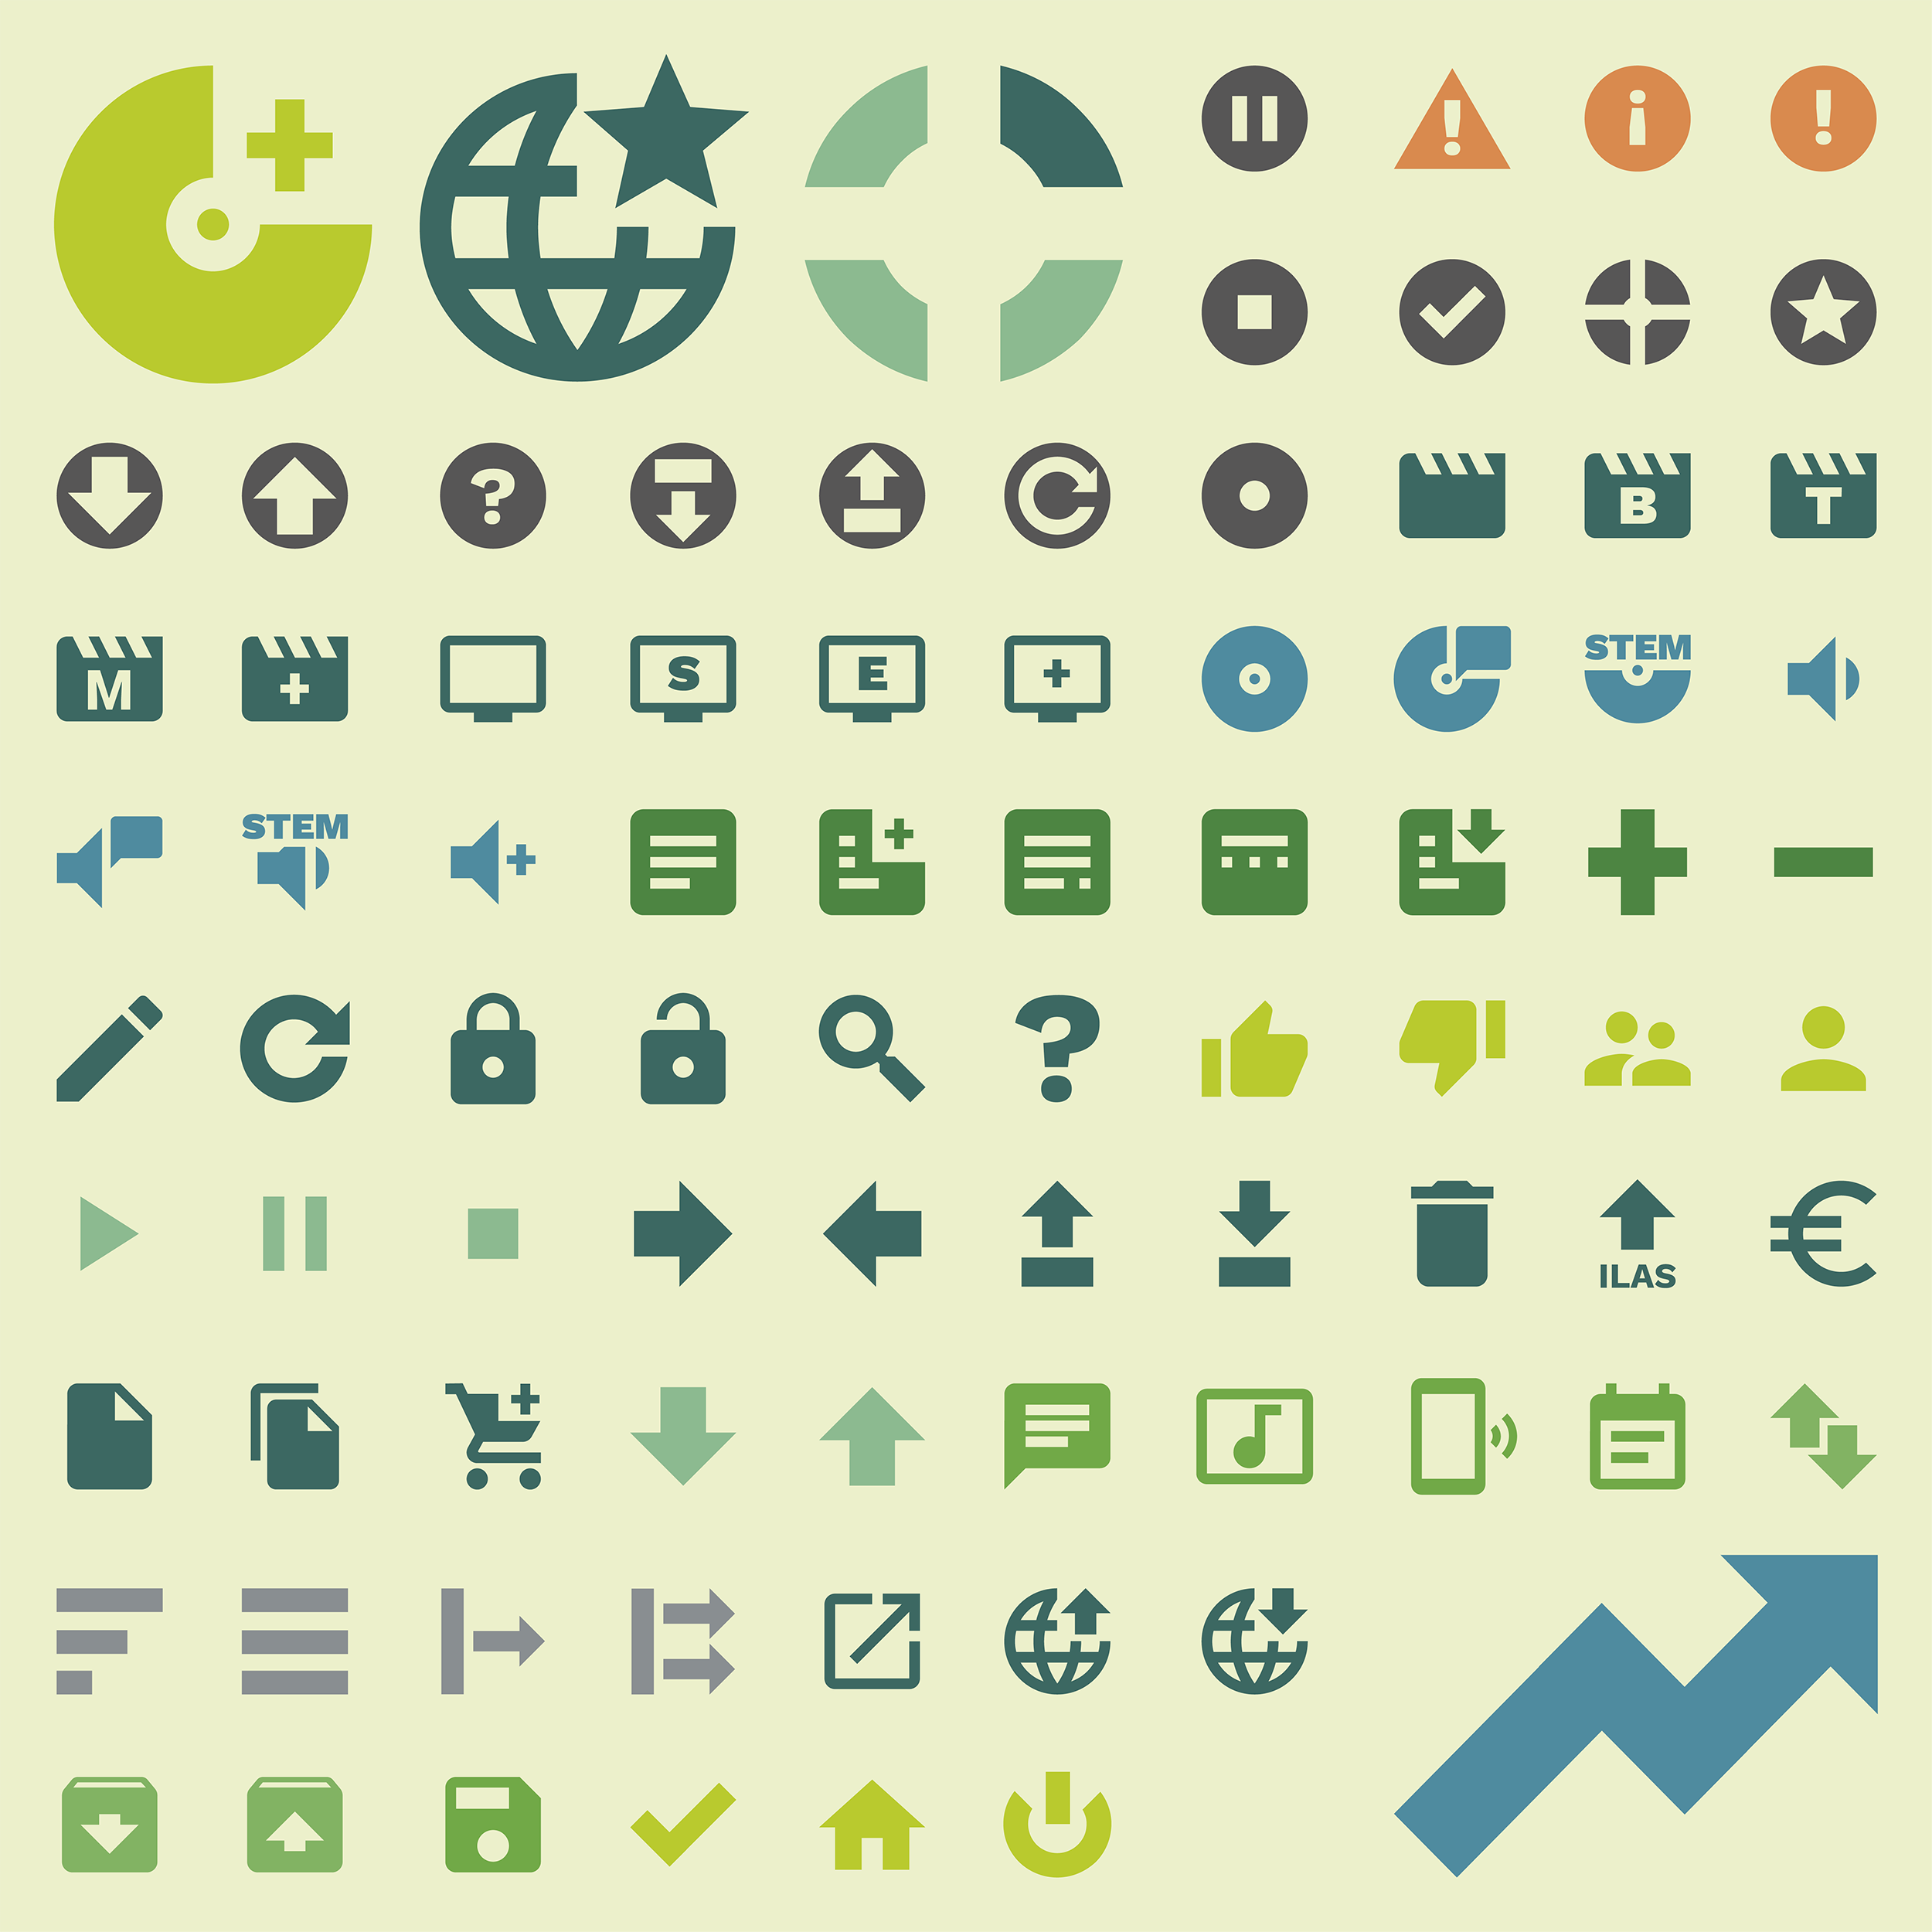 knm-dmb-icons-studio-ahoi.png